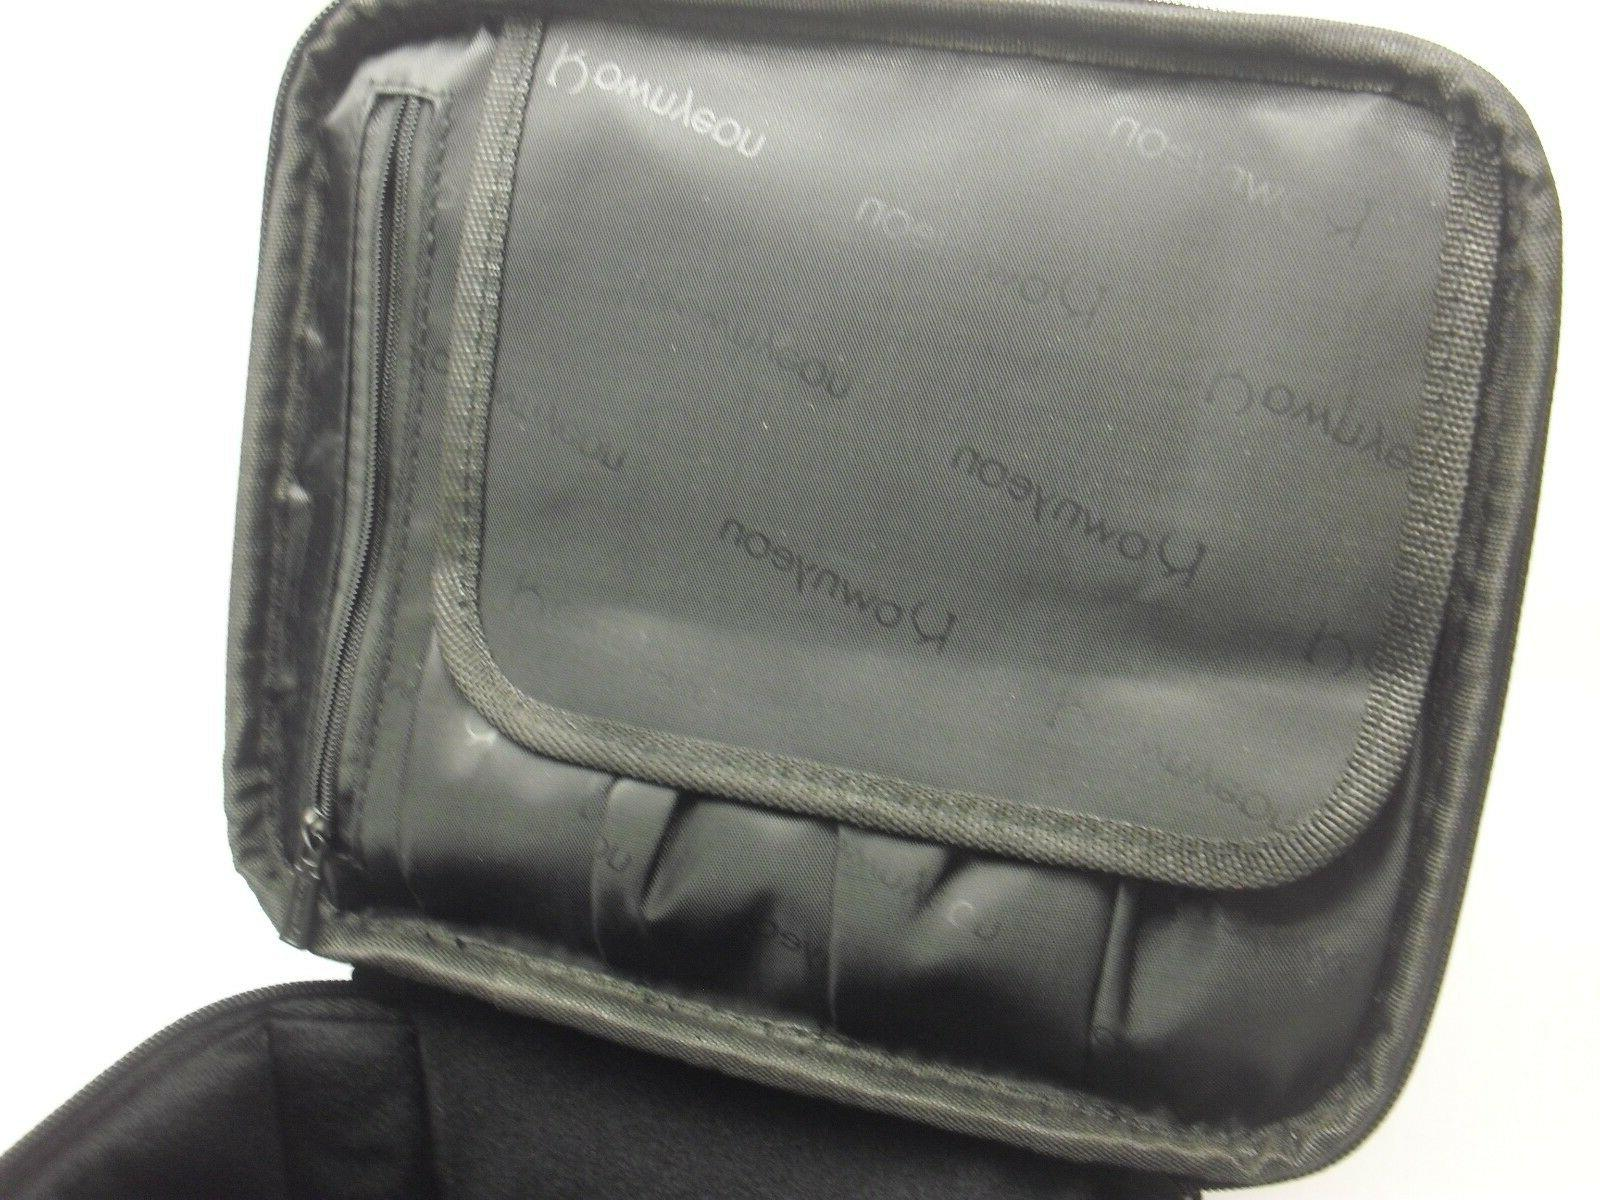 ROWNYEON Travel Bag Makeup Train